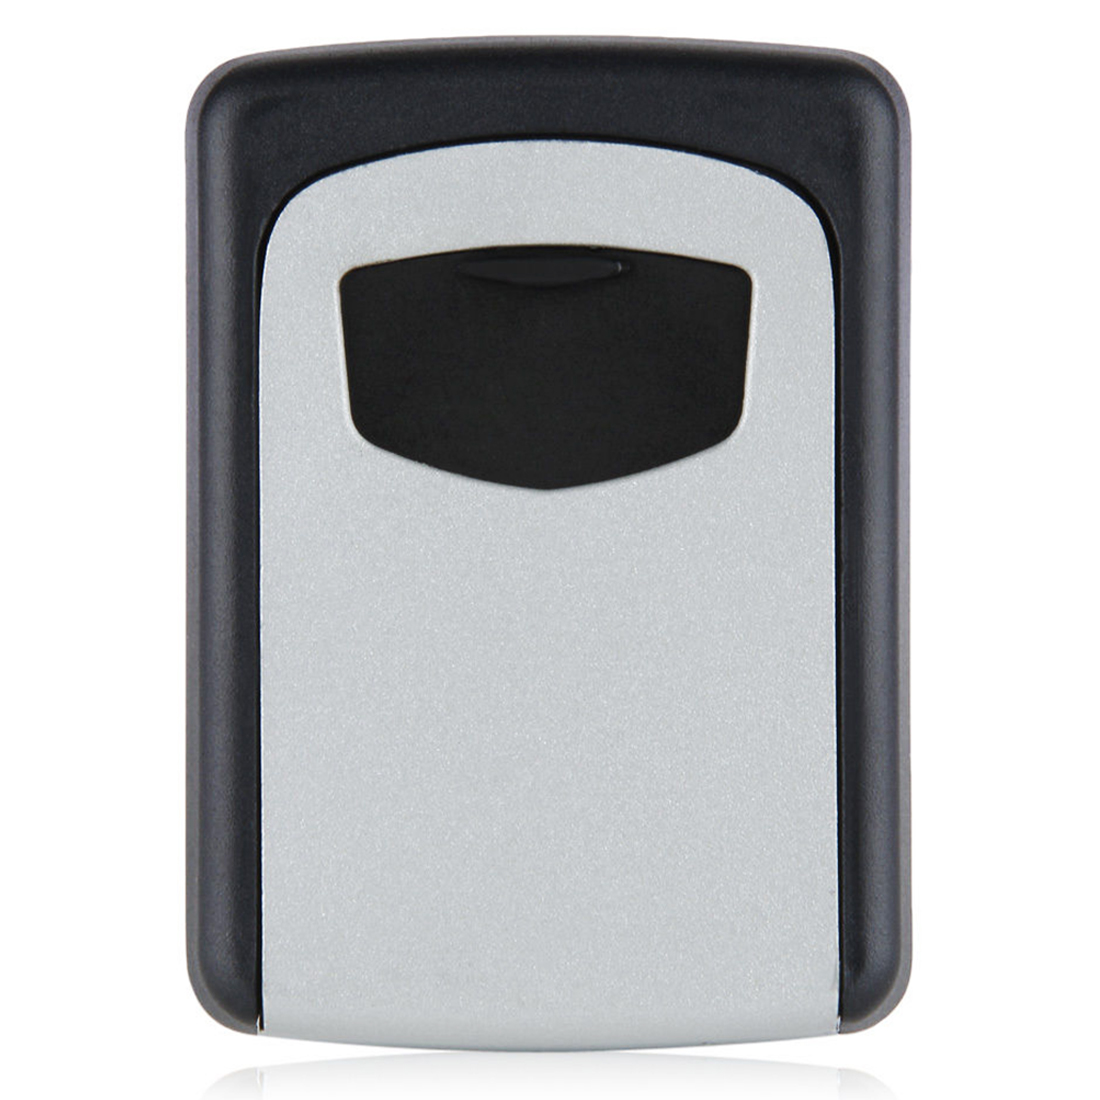 Brand New Wall Mounted 4 Digit Combination Key Storage Security Safe Lock Outdoor Indoor